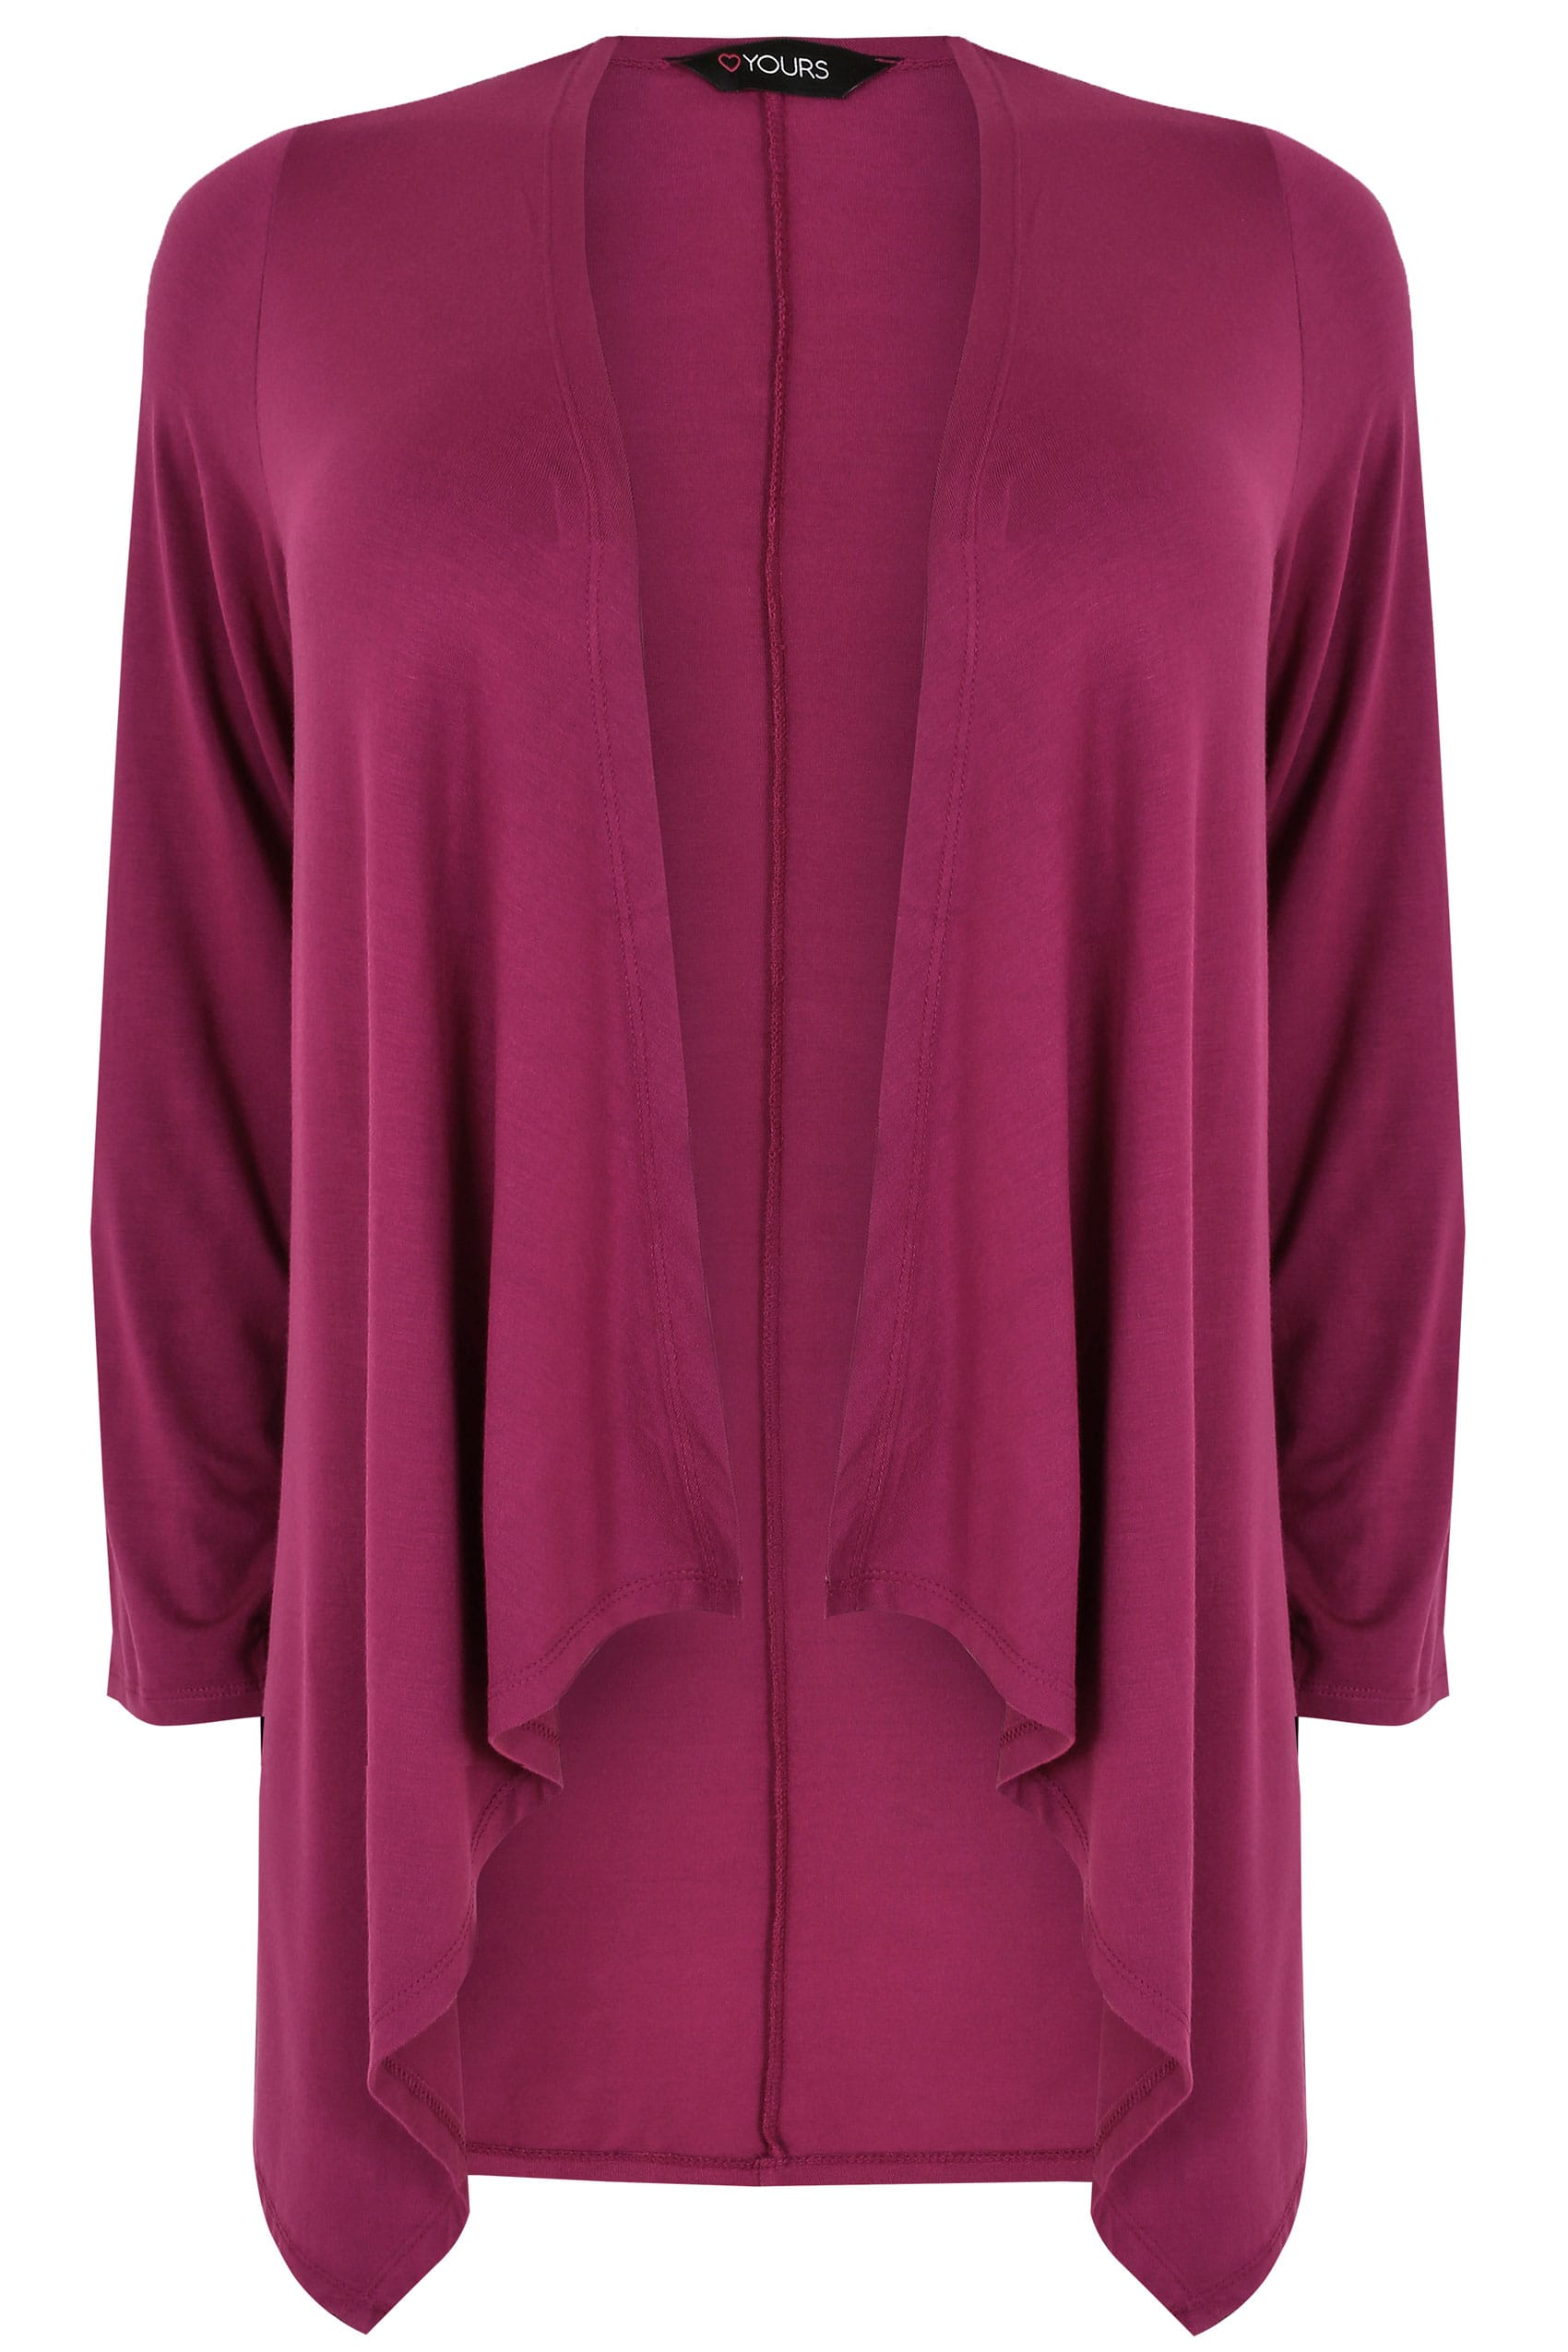 Magenta Pink Edge To Edge Waterfall Jersey Cardigan, Plus size 16 ...